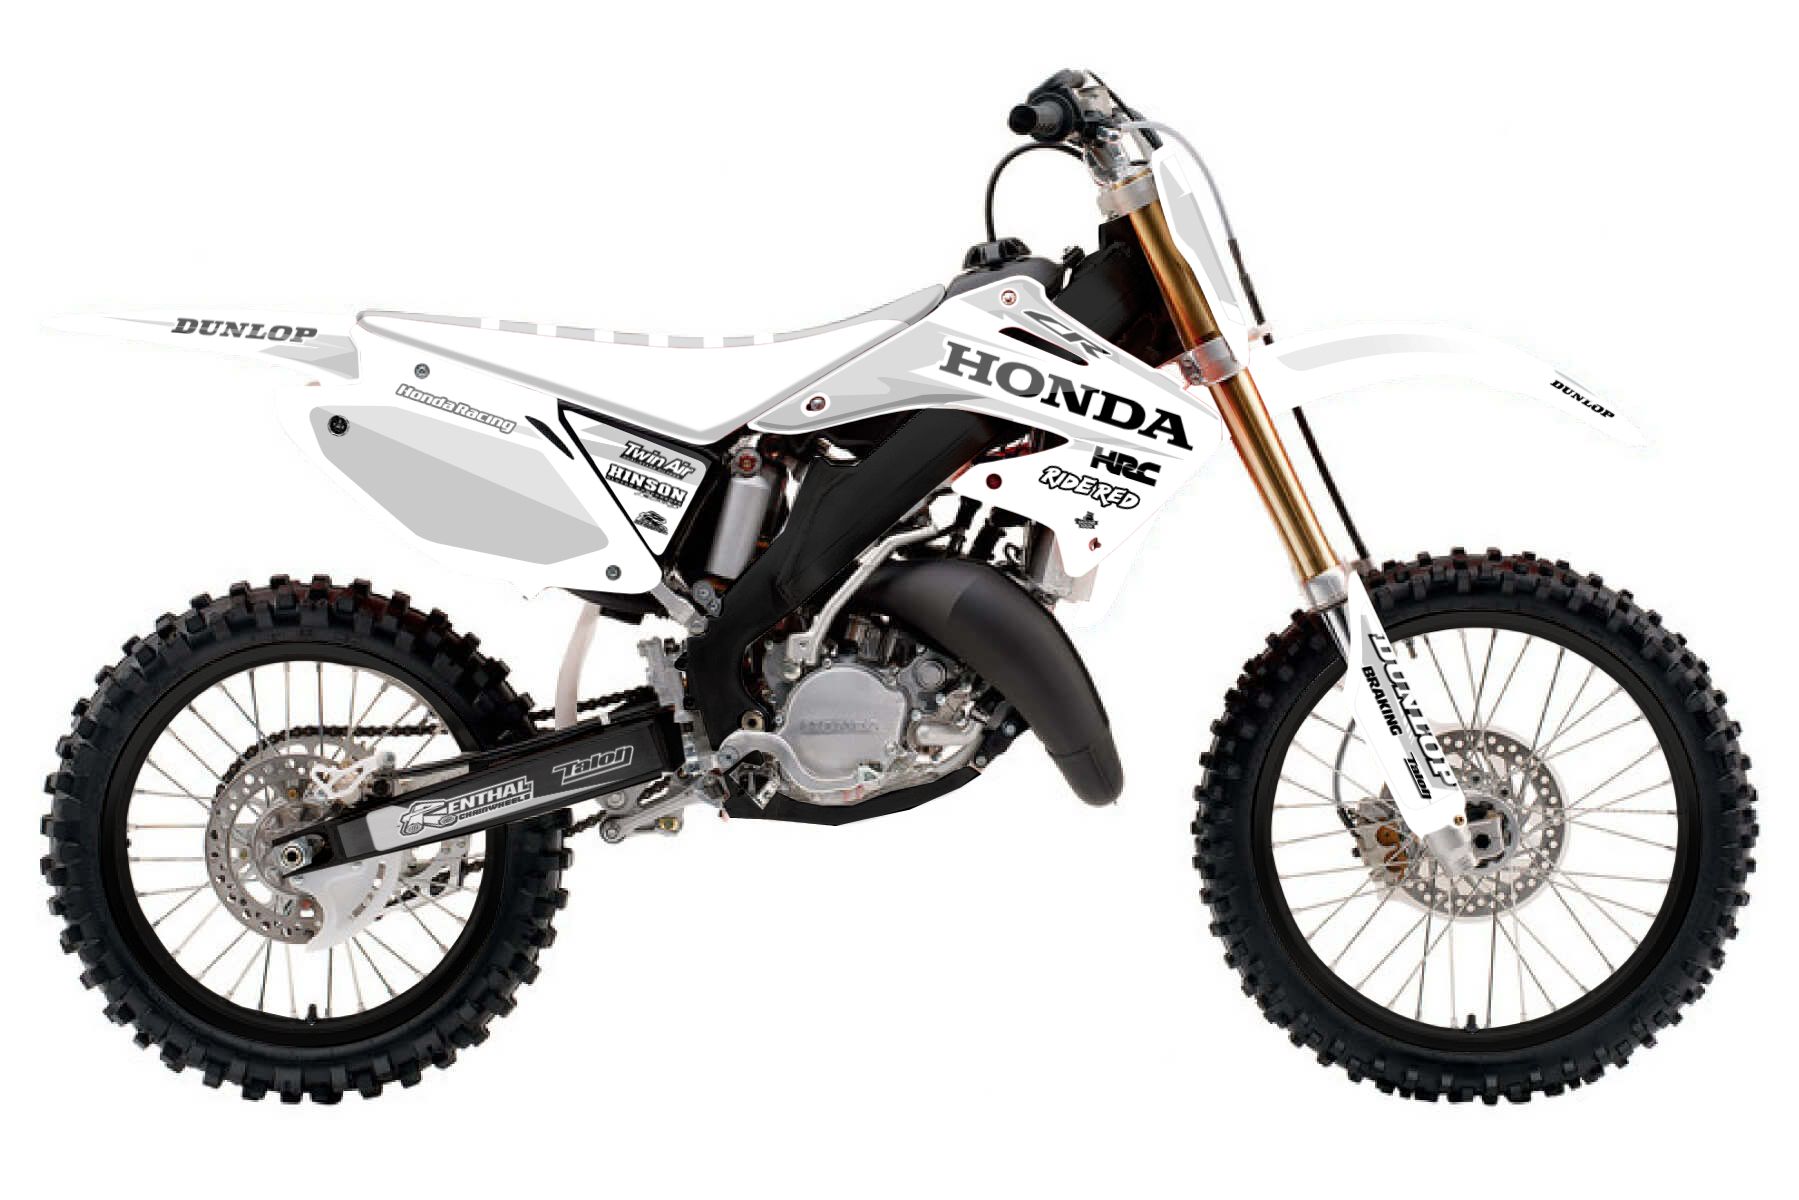 Honda CR 125 MX Graphic Kits  Do not underestimate the Honda CR 125. It was built to provide you with a high quality bike to practise on. If you have high ambitions, this one is the bike for you.